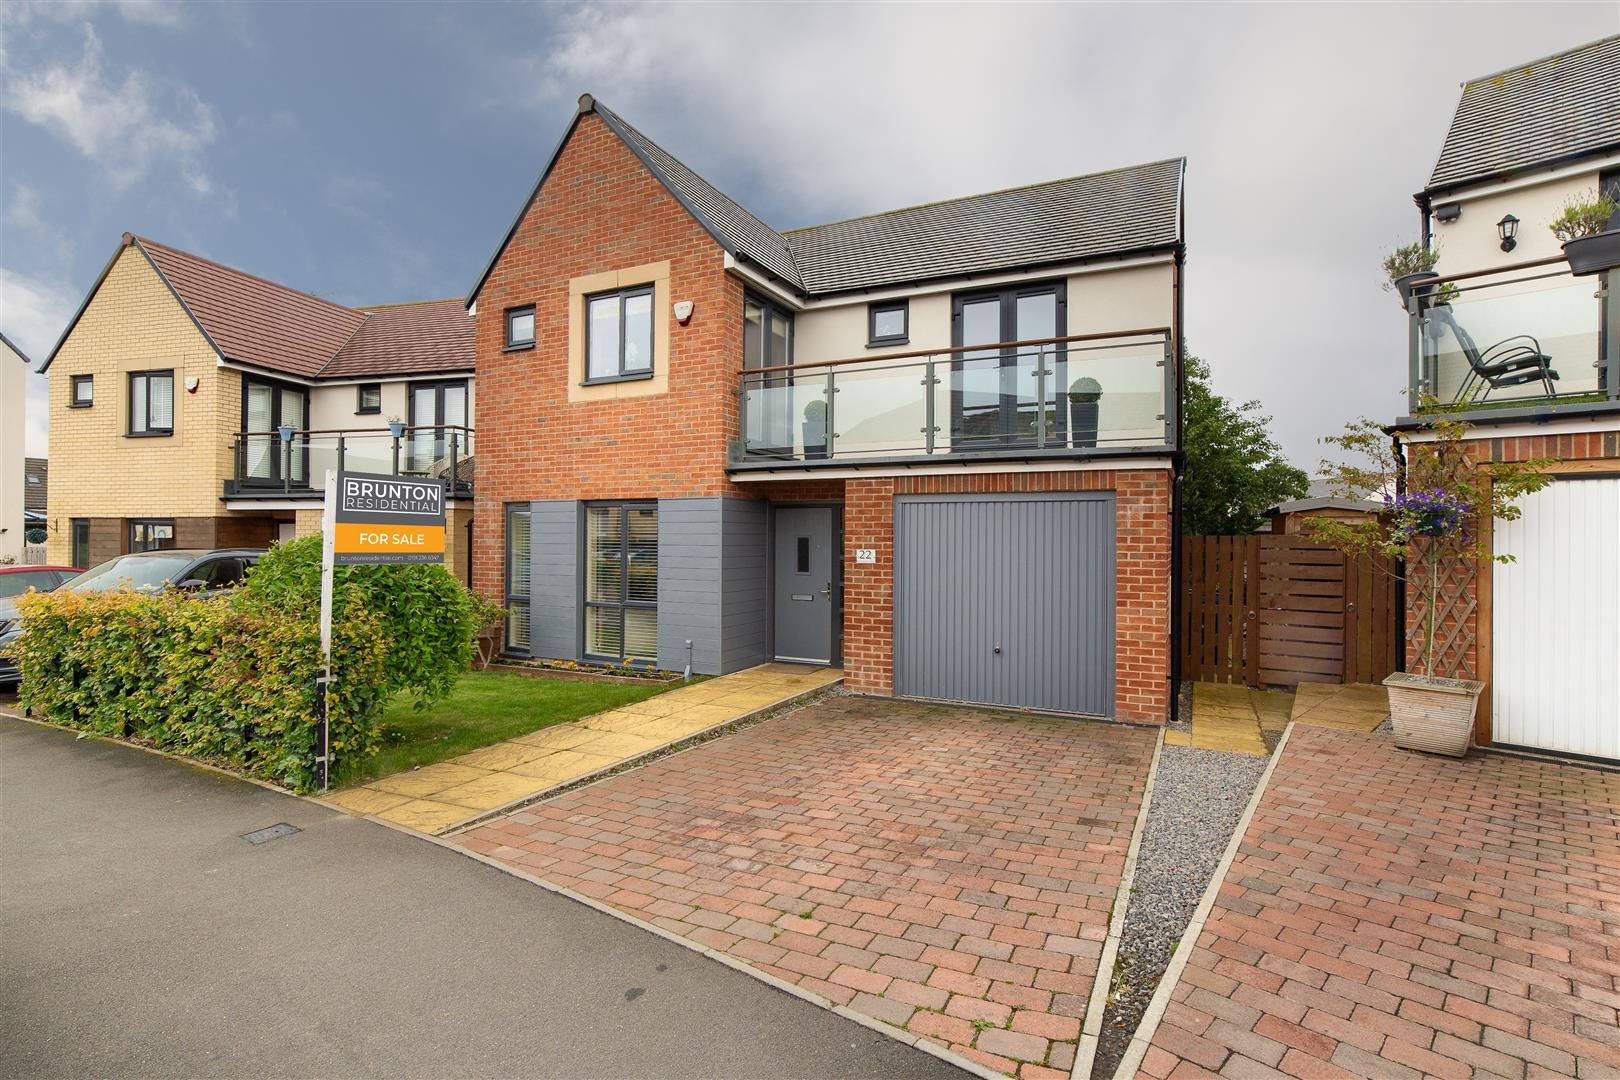 4 bed detached house for sale in Newcastle Upon Tyne, NE13 9AT - Property Image 1